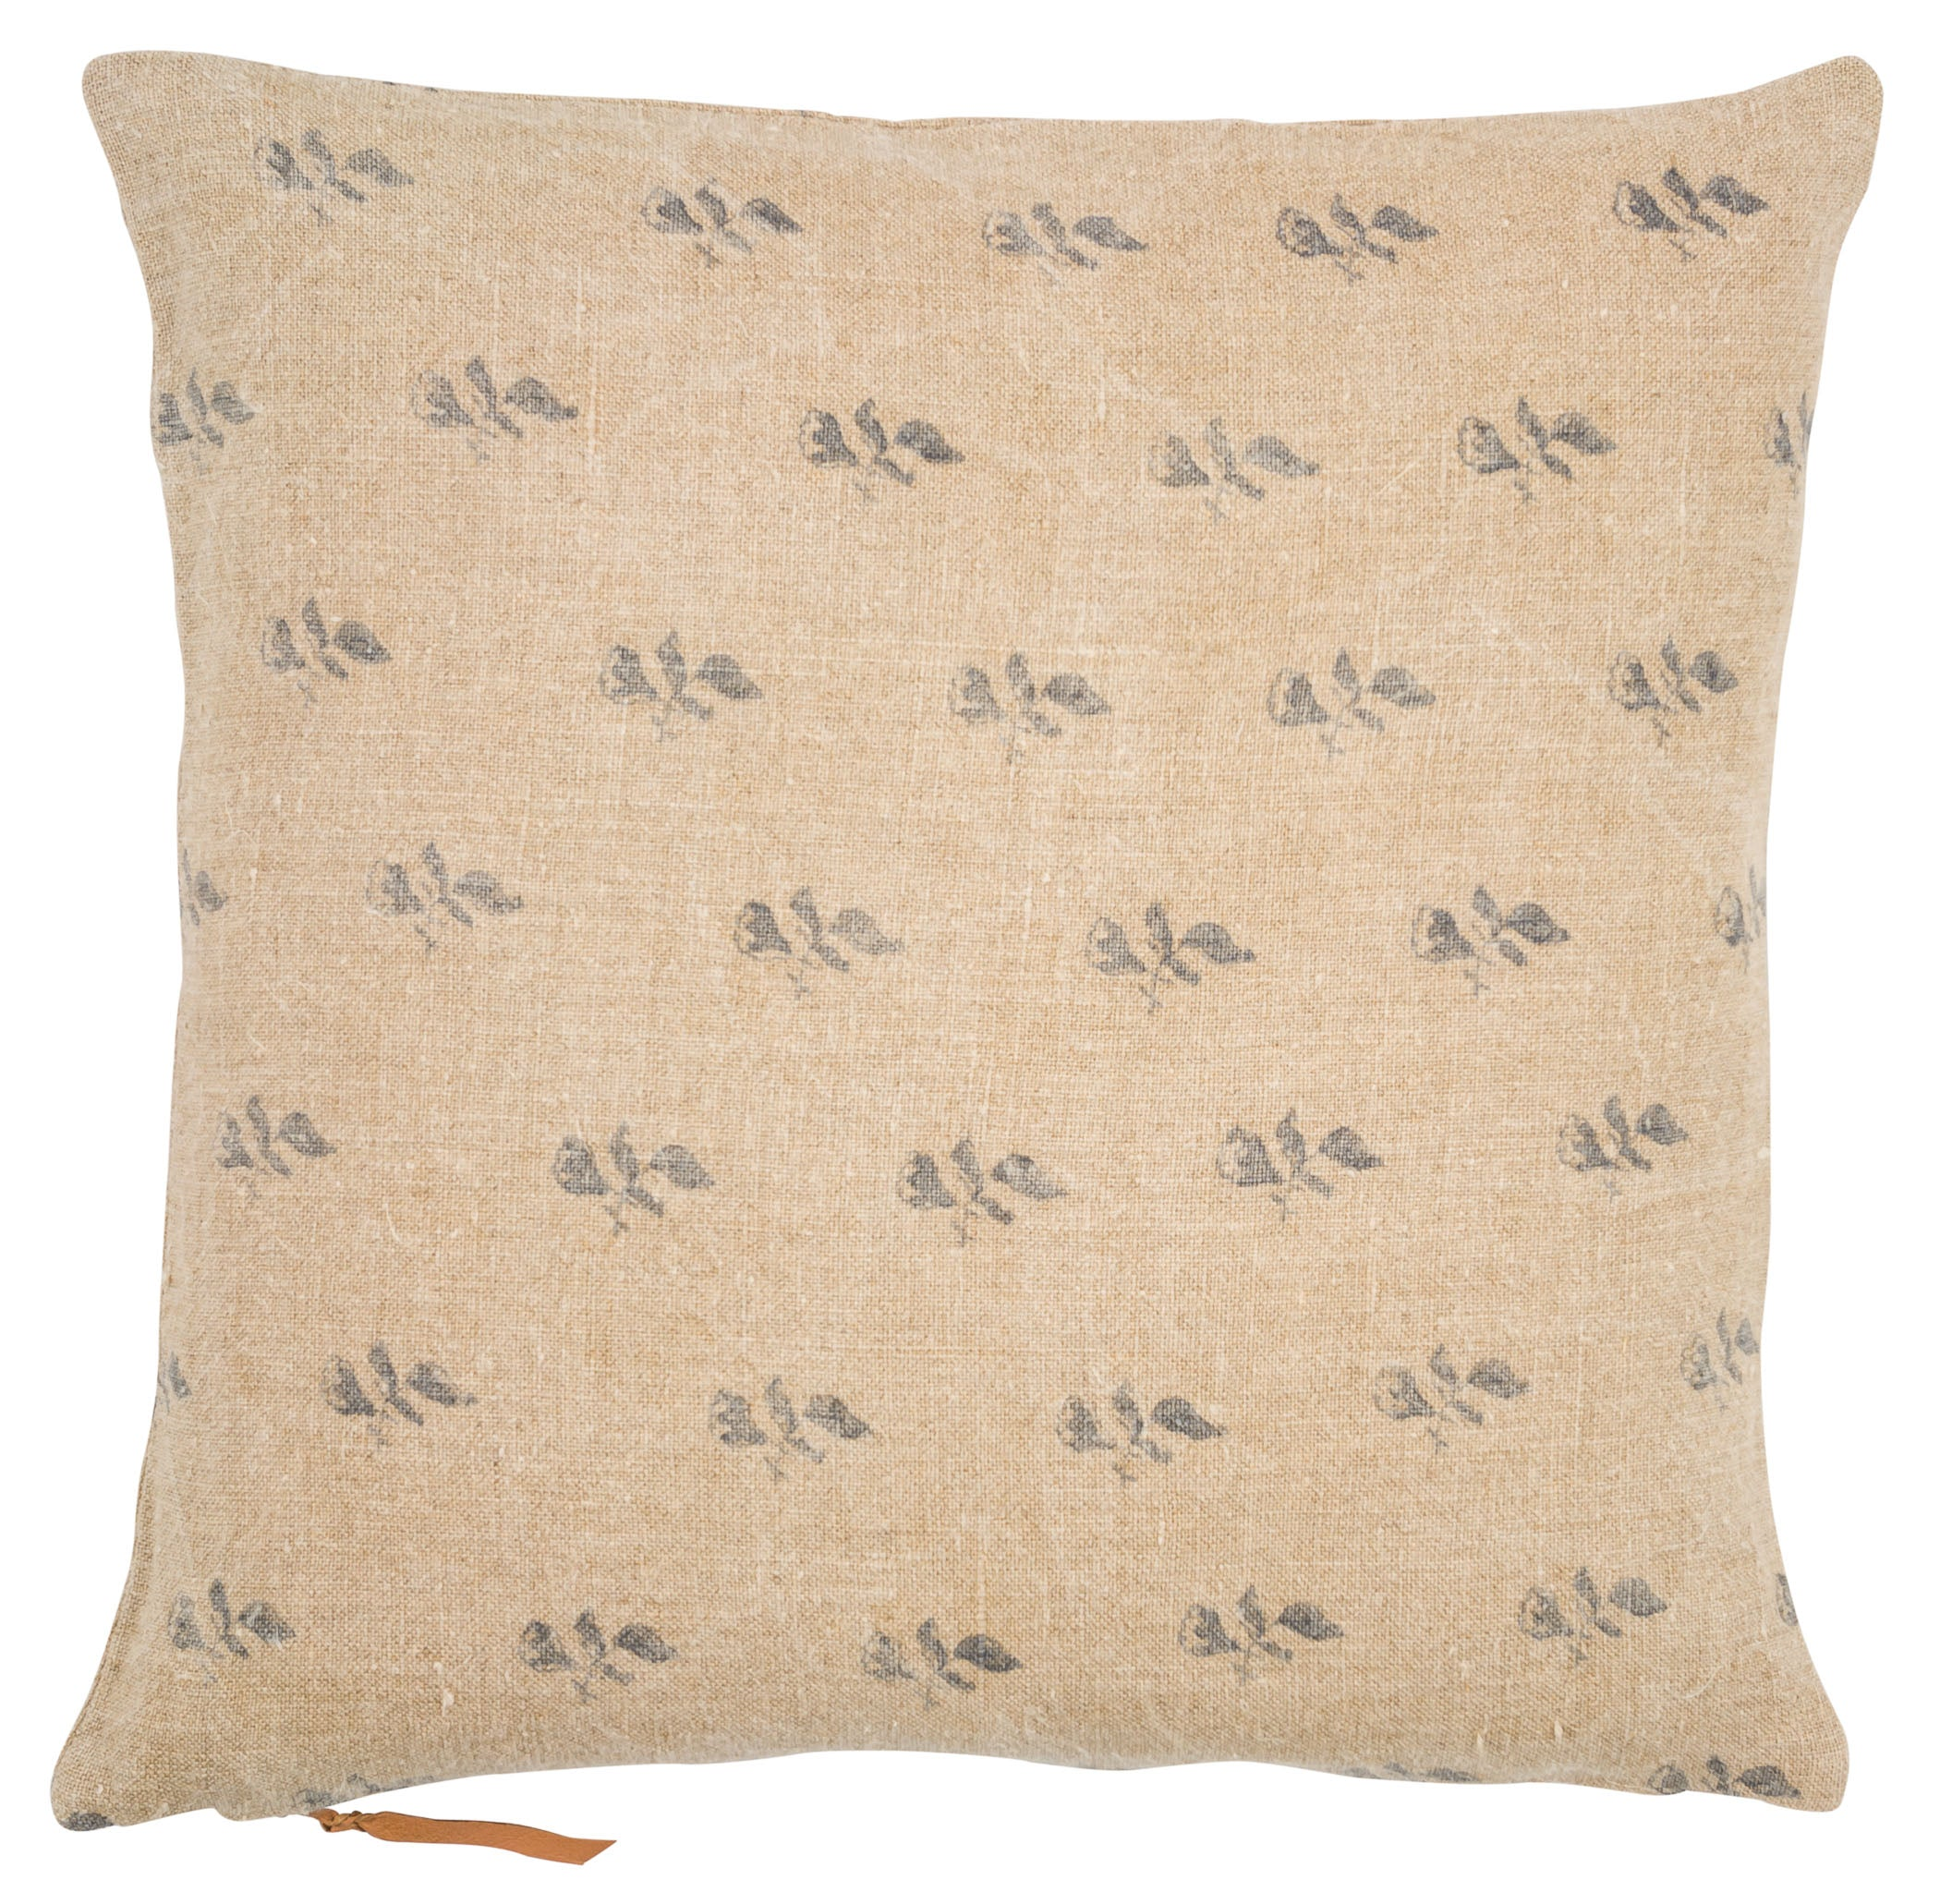 Linen Cushion with Bud print in Blue